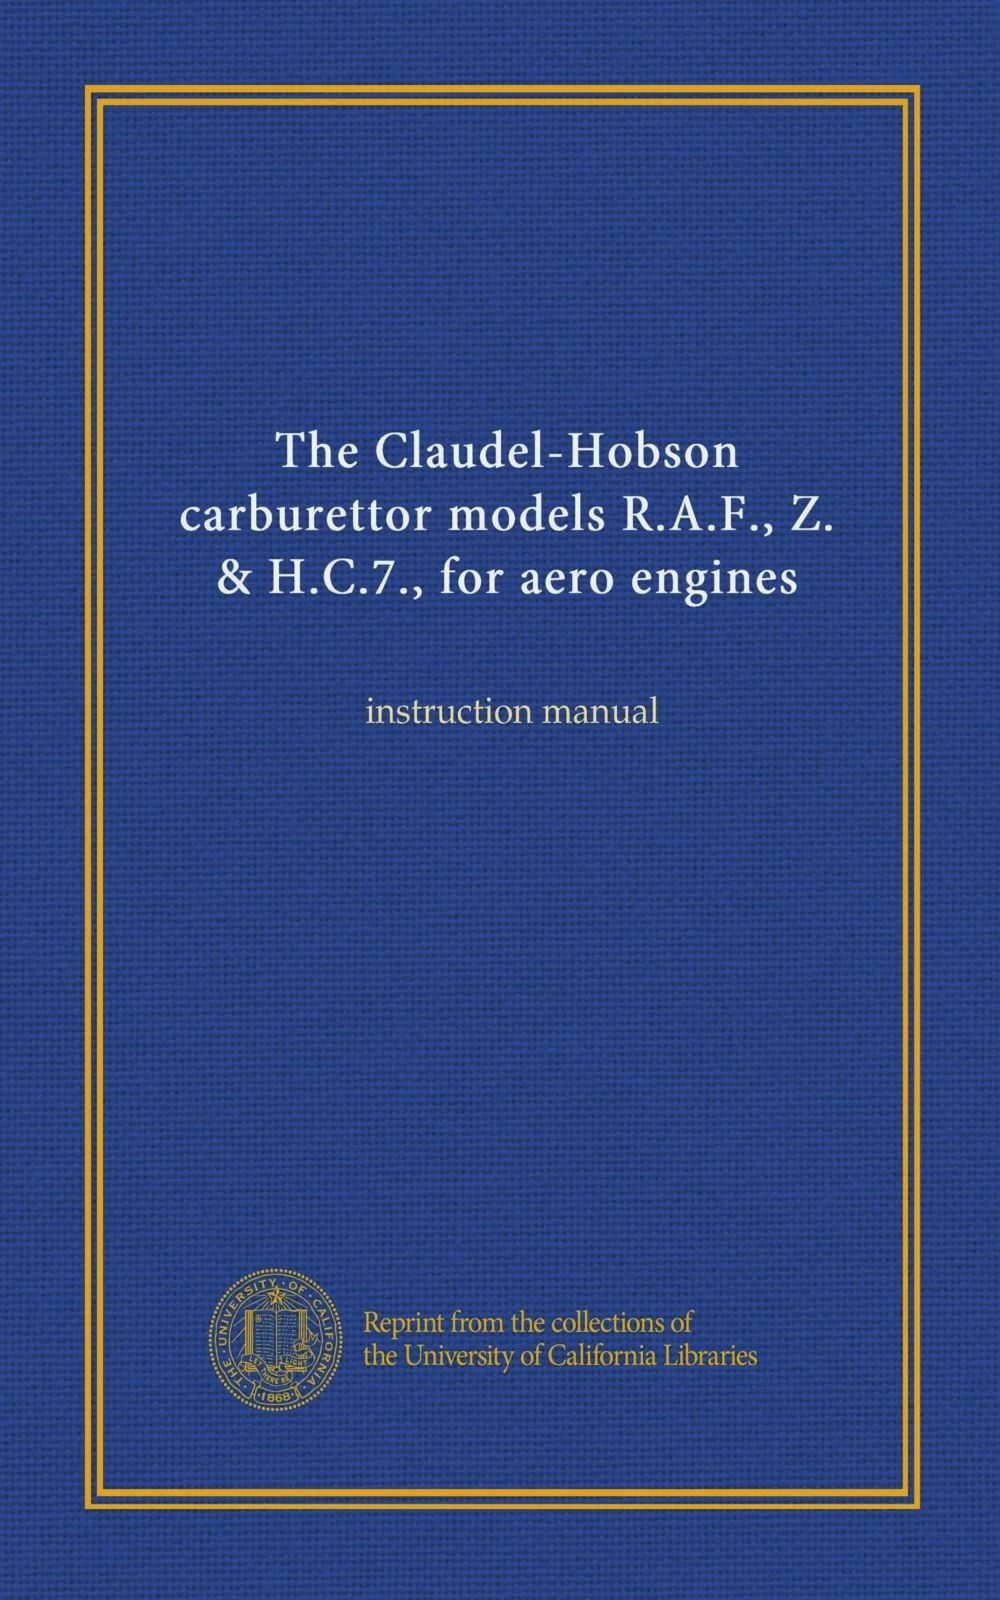 The Claudel-Hobson carburettor models R.A.F., Z. & H.C.7., for aero engines: instruction manual PDF